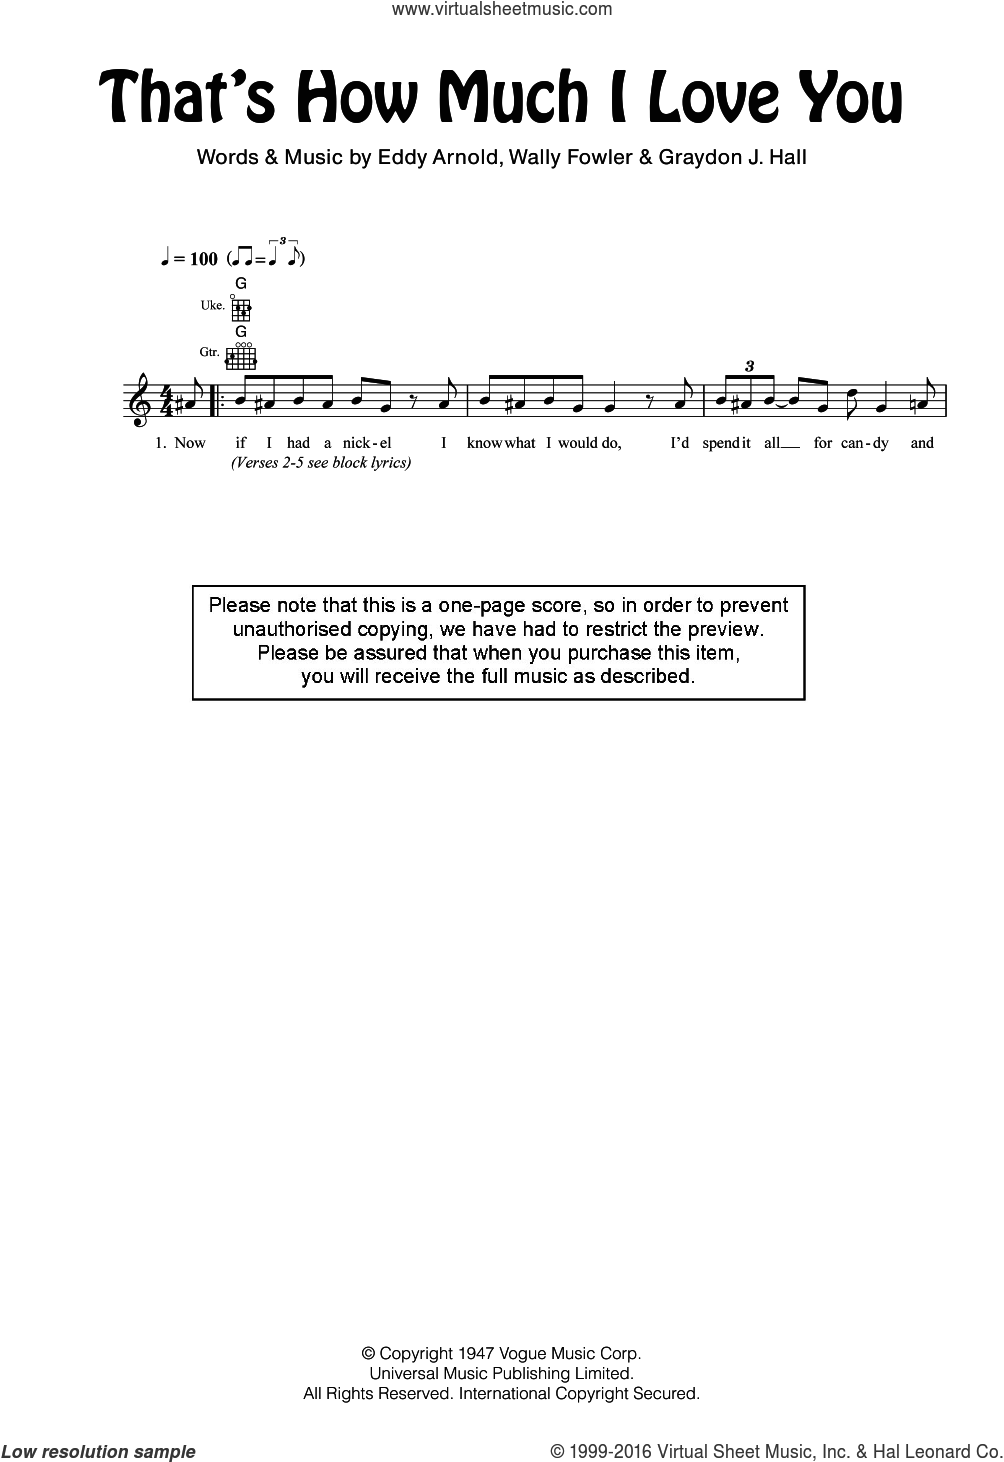 That's How Much I Love You sheet music for ukulele by Wally Fowler